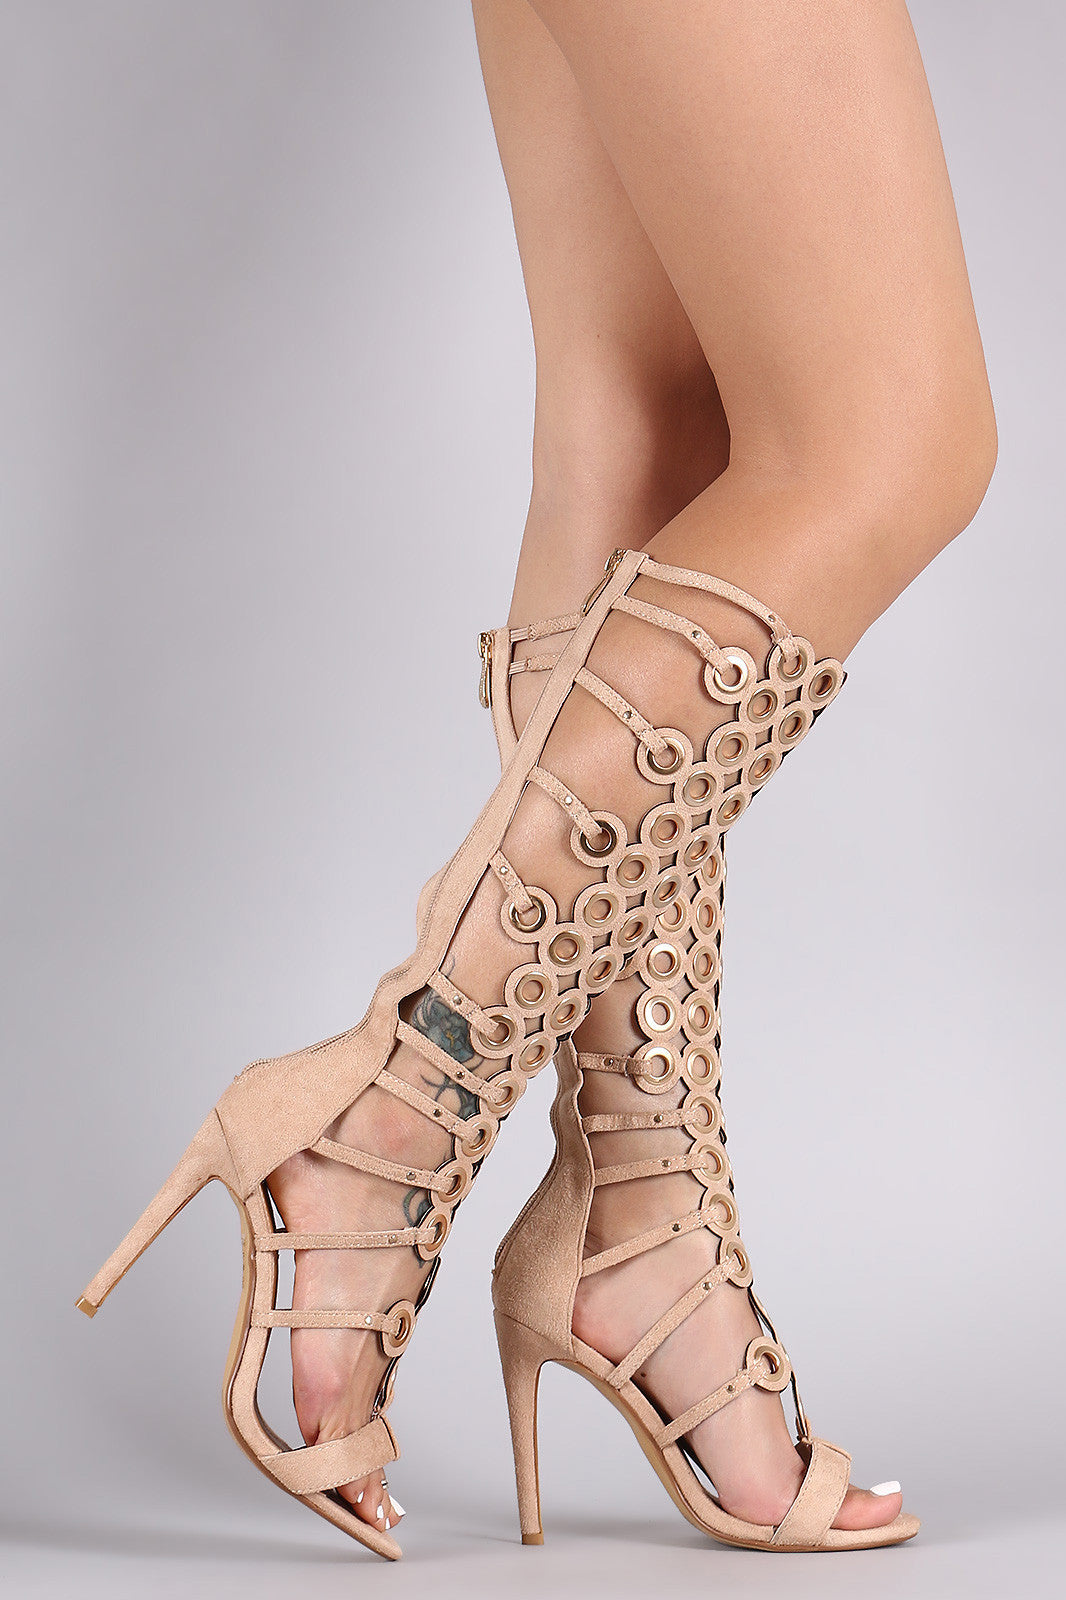 Suede Grommets Embellished Strappy Gladiator Heel - Thick 'N' Curvy Shop - 11